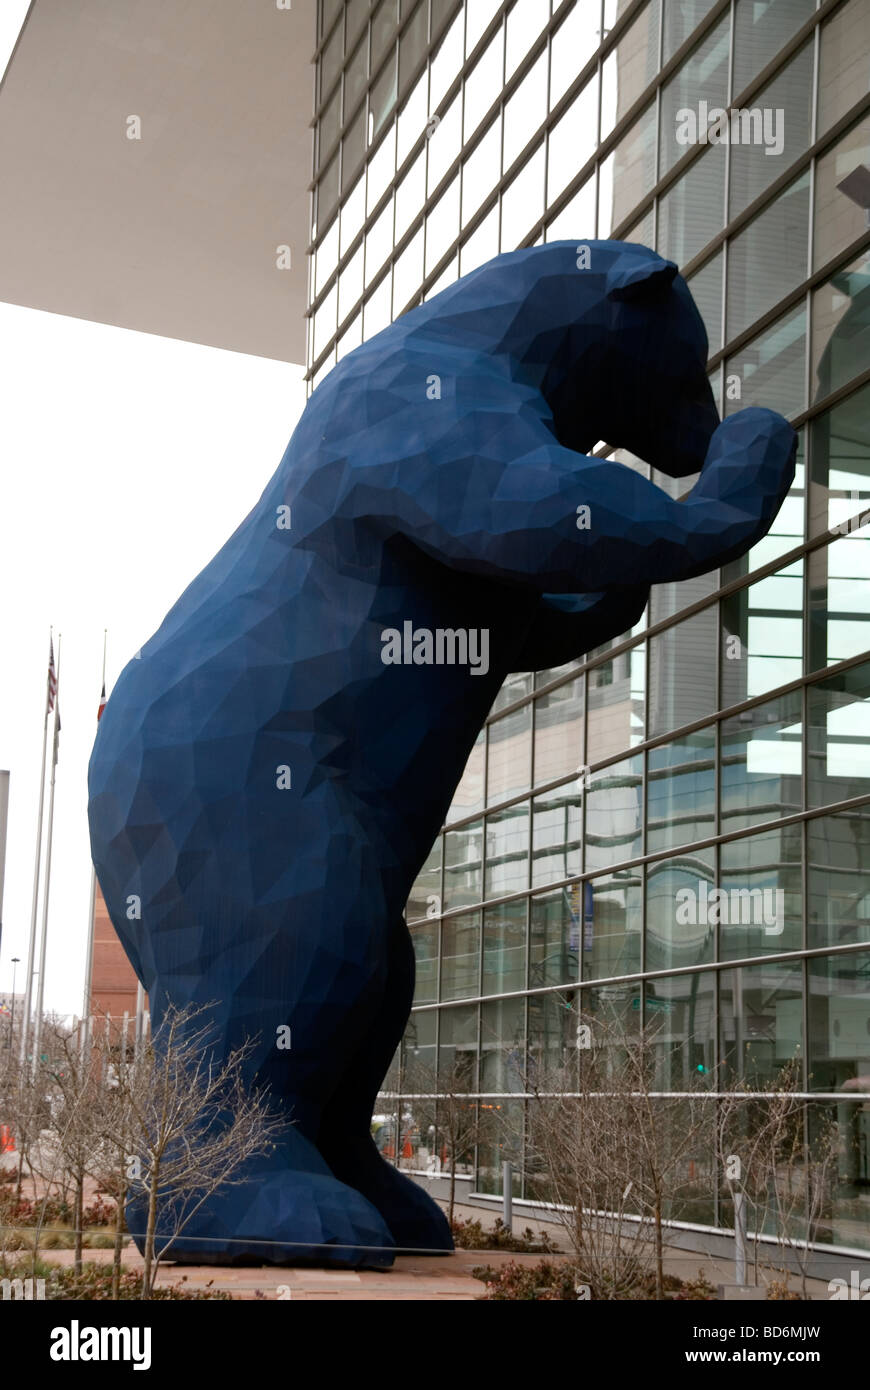 A statue of the Democrat Bear looking into the Denver convention center after the election of Obama - Stock Image